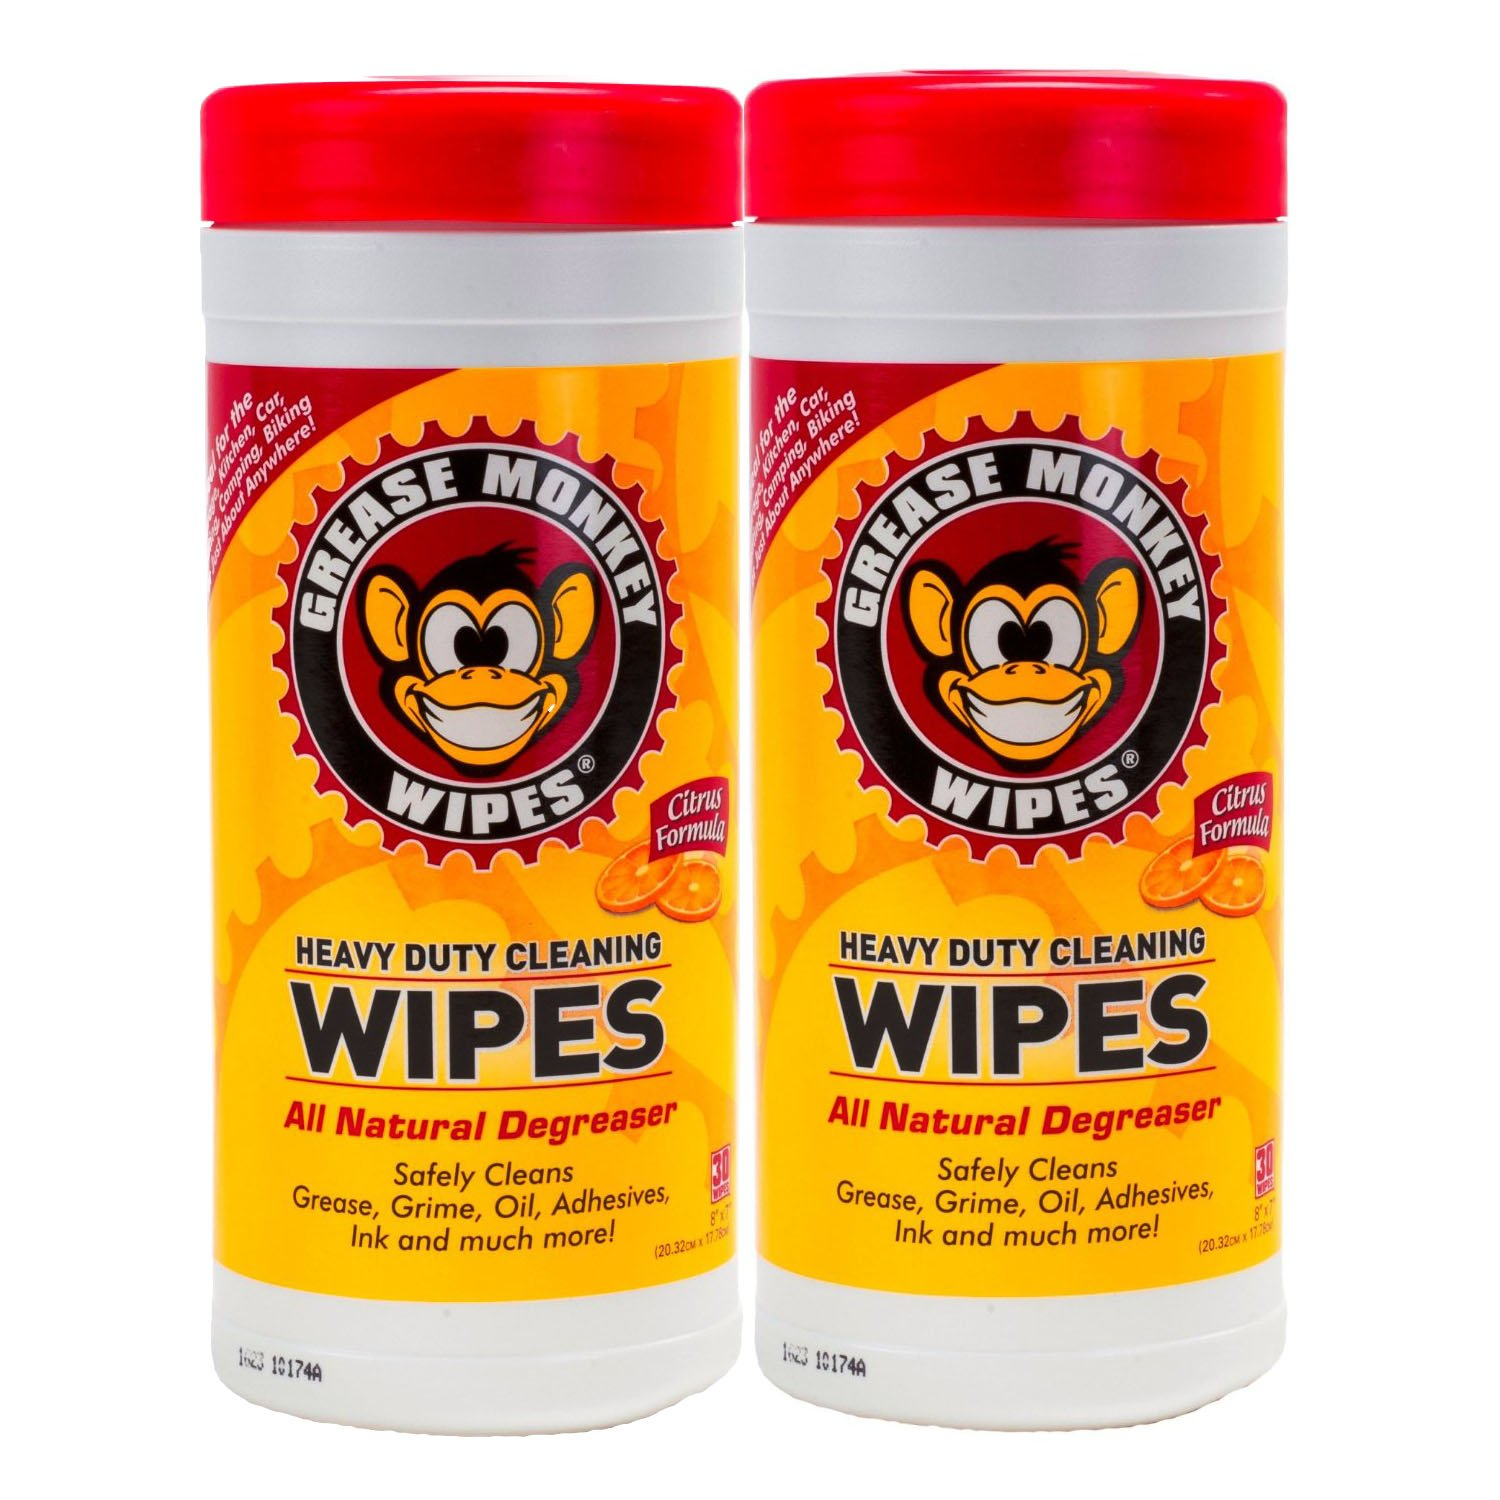 Grease Monkey Wipes Heavy Duty Multi Purpose Cleaning Wipes (Pack of 2), 25 Count Canister